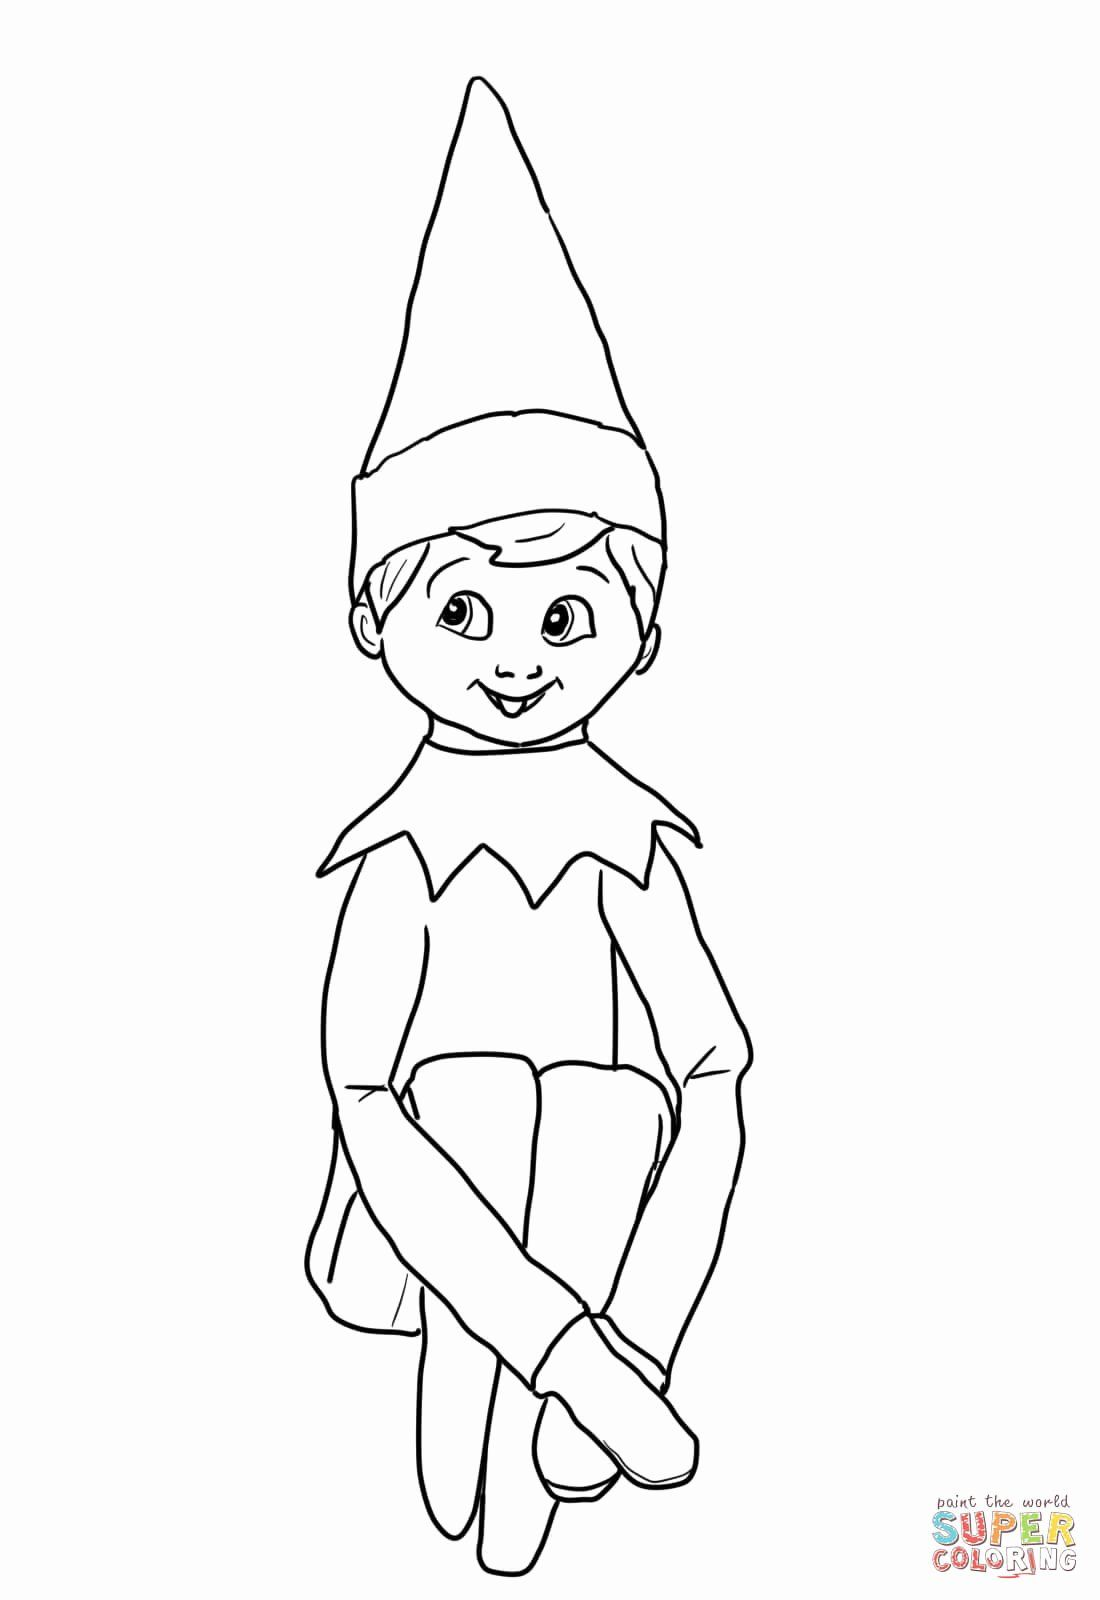 32 Elf On The Shelf Coloring Page In 2020 Elf Drawings Santa